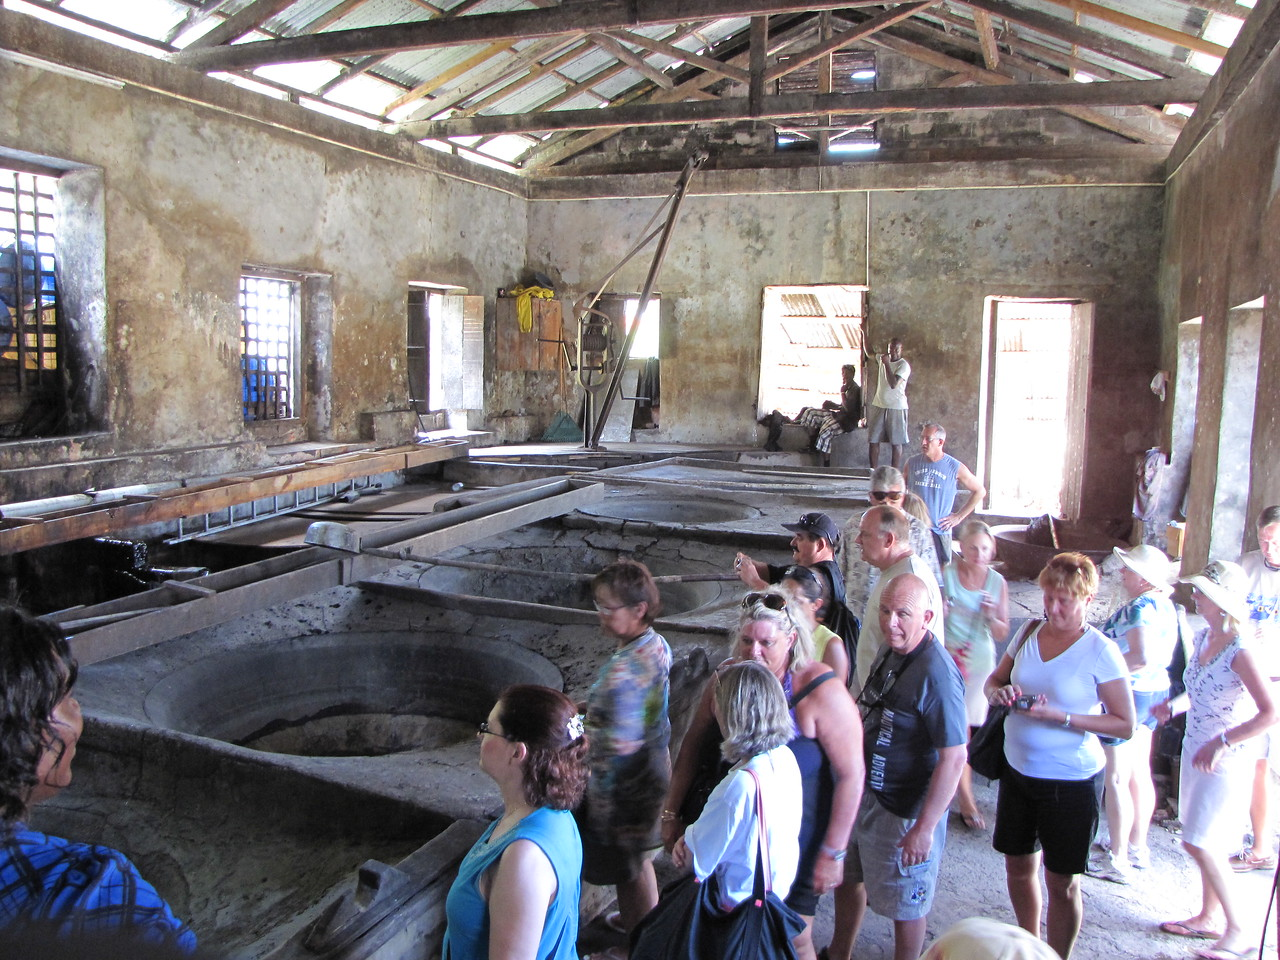 We then go inside where the cane juice is boiled in large metal basins.